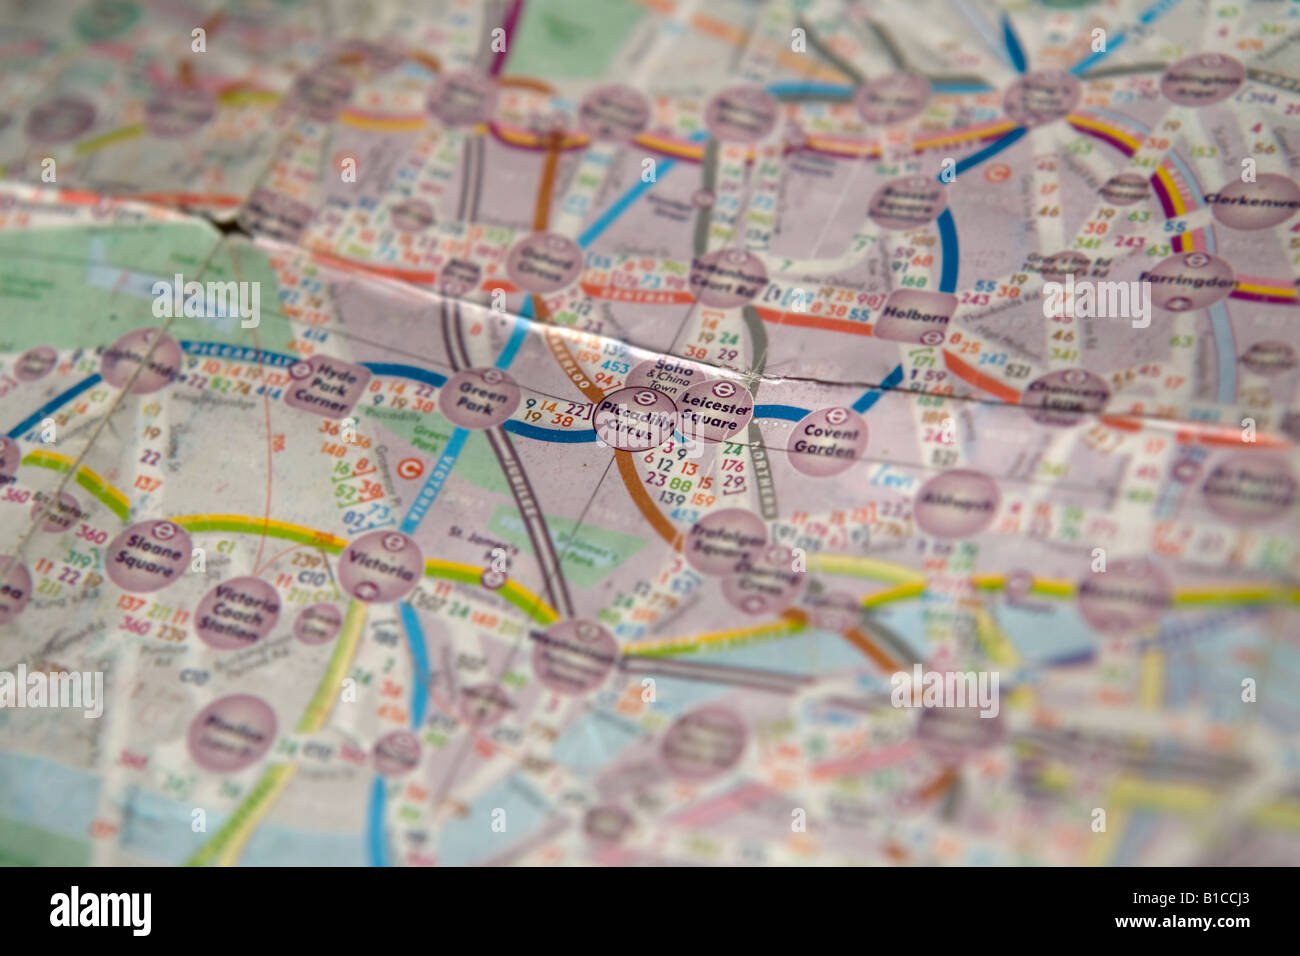 Piccadilly Circus and Leicester Square highlighted on a map of